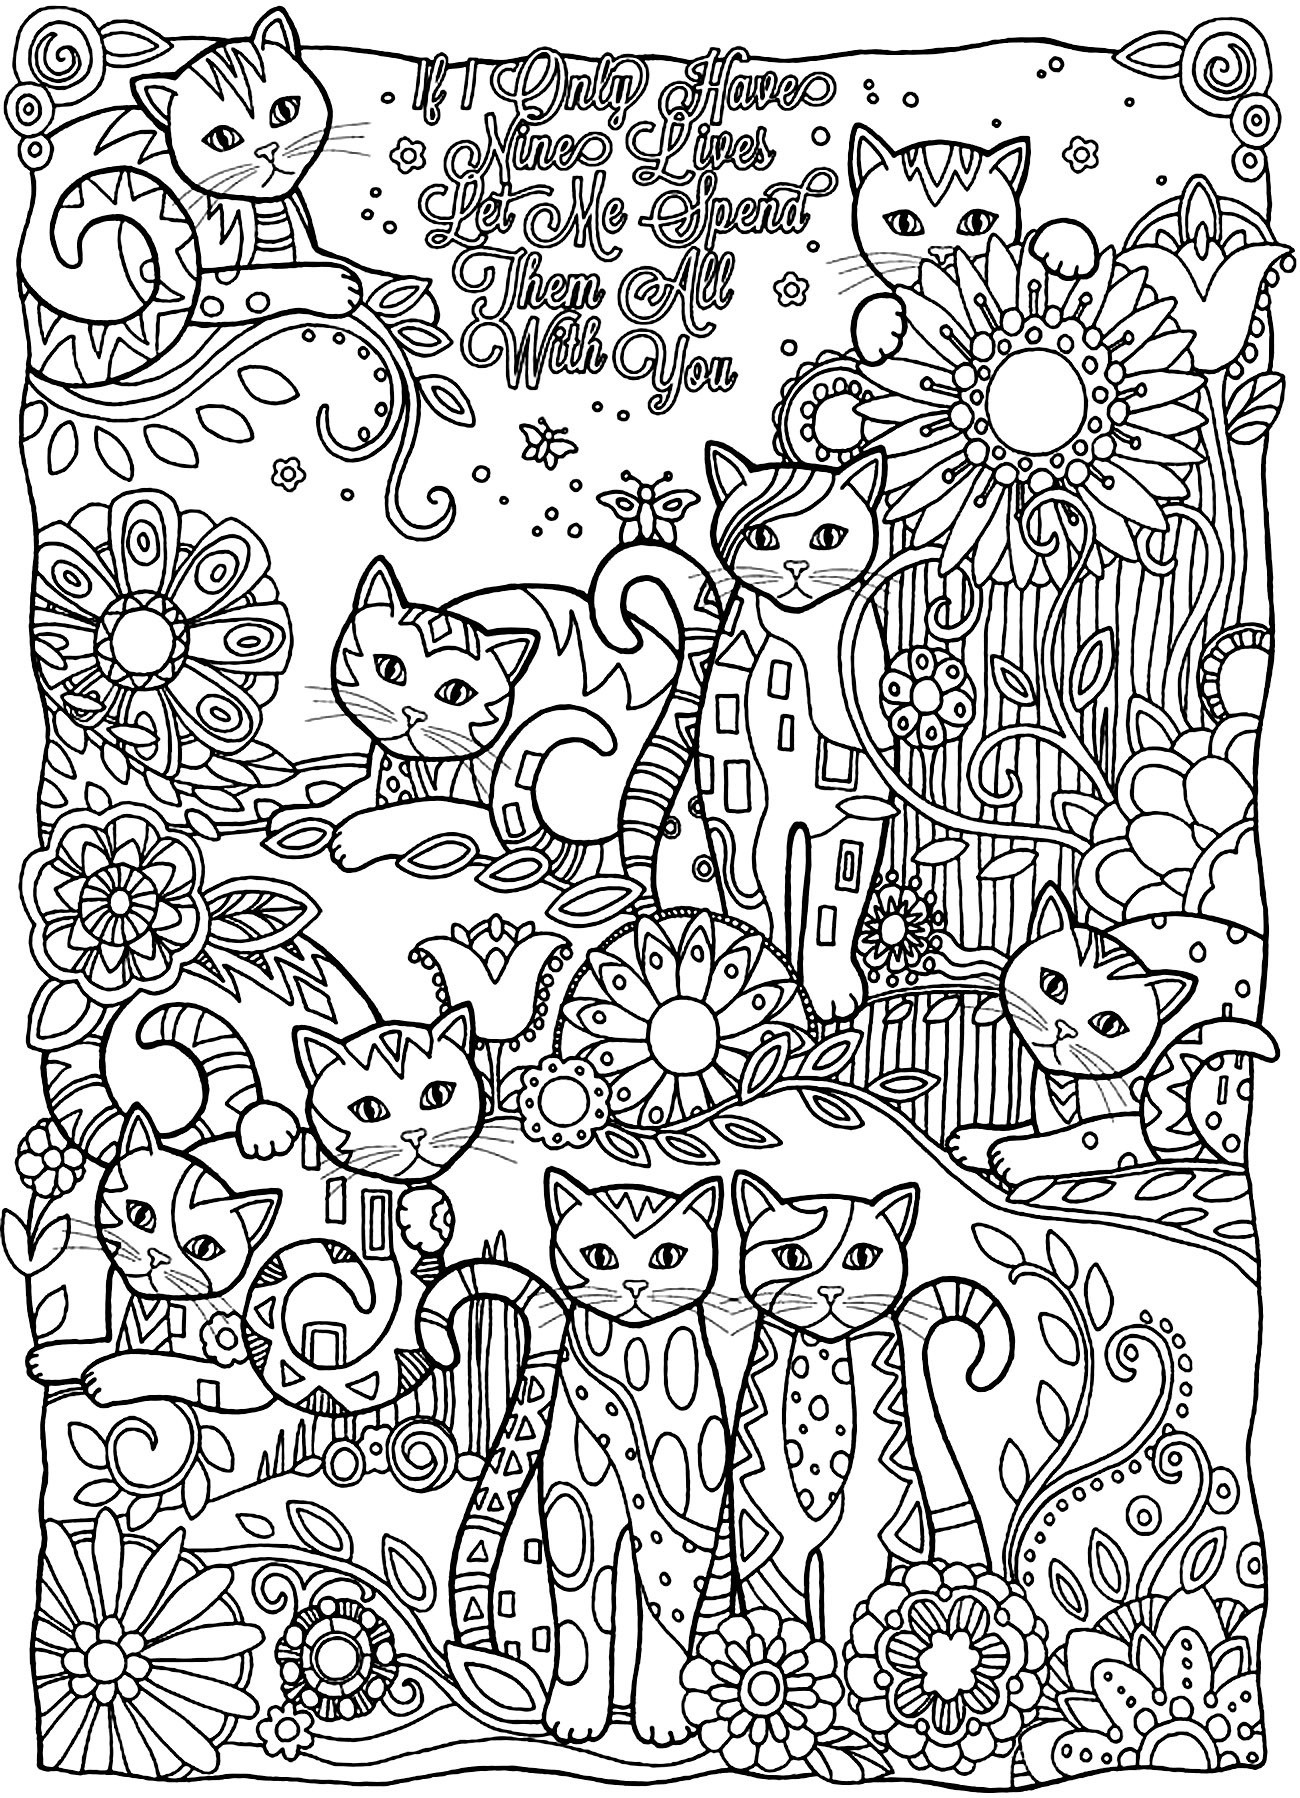 Prodical son Coloring Pages  to Print 6h - Free For kids